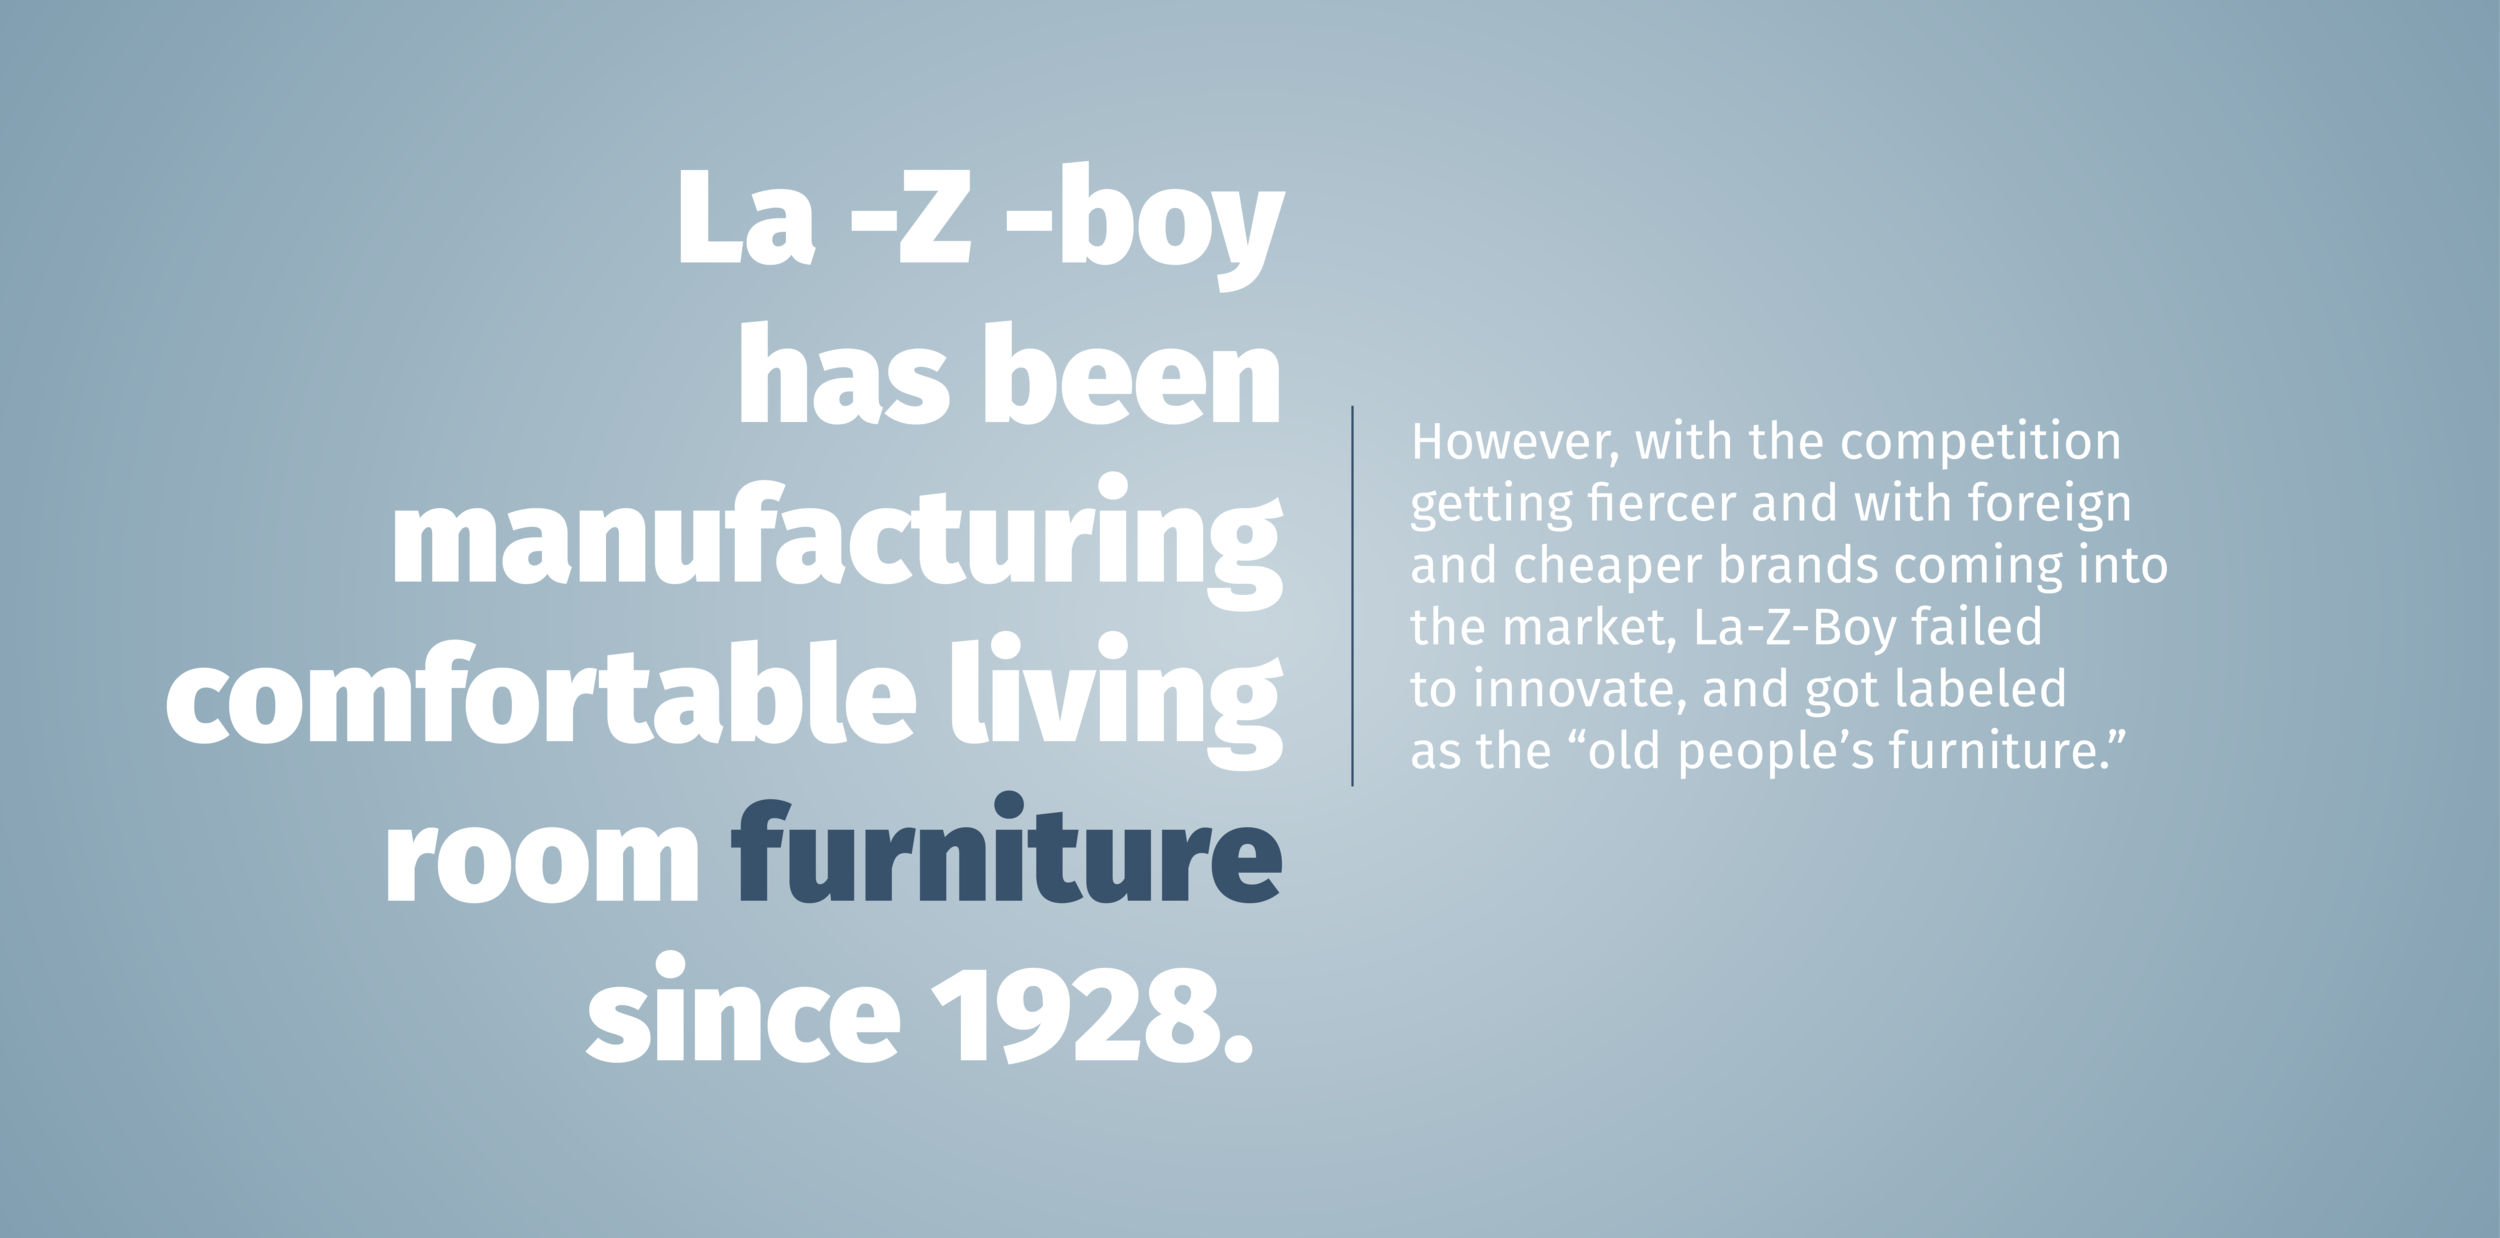 LaZboy Story-01.png